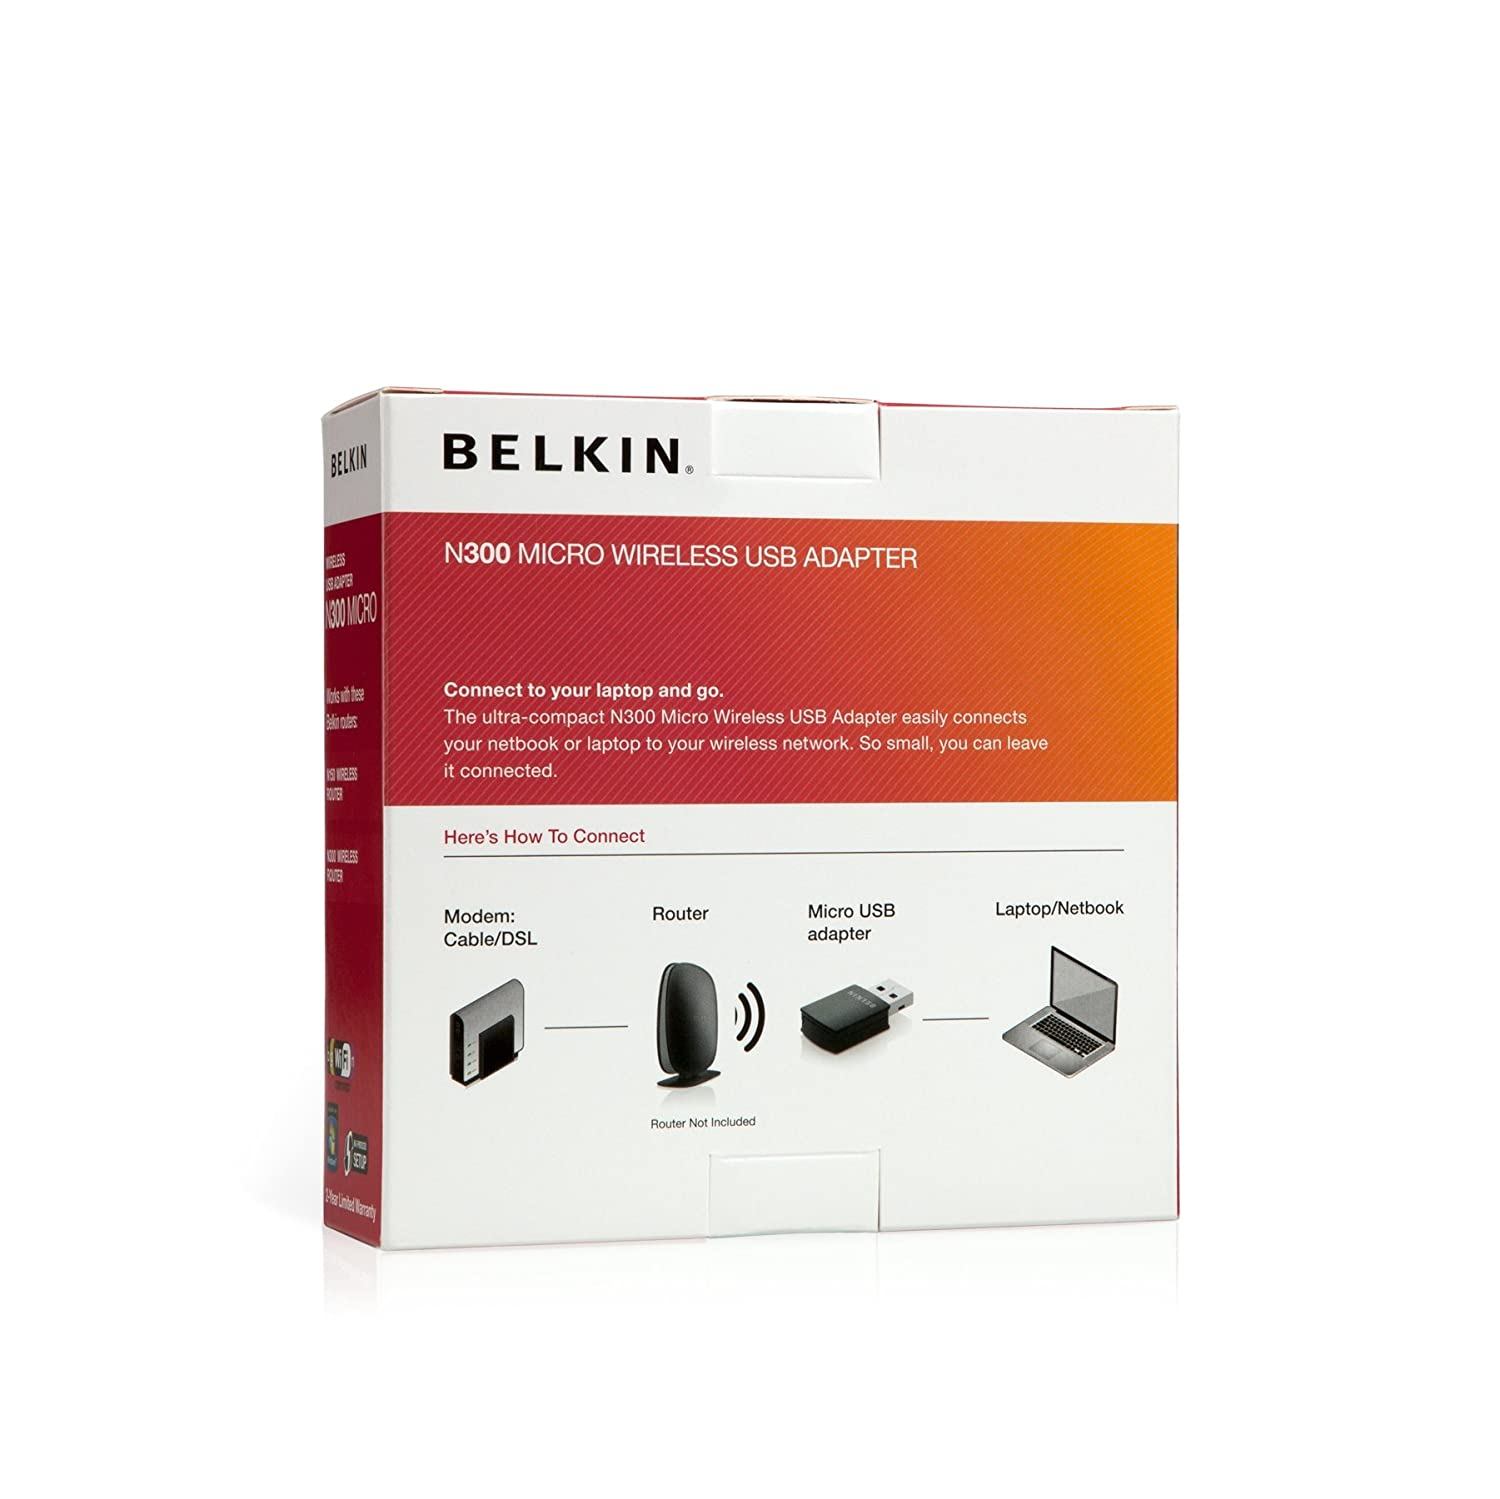 BELKIN SURF N300 USB WINDOWS 7 X64 DRIVER DOWNLOAD